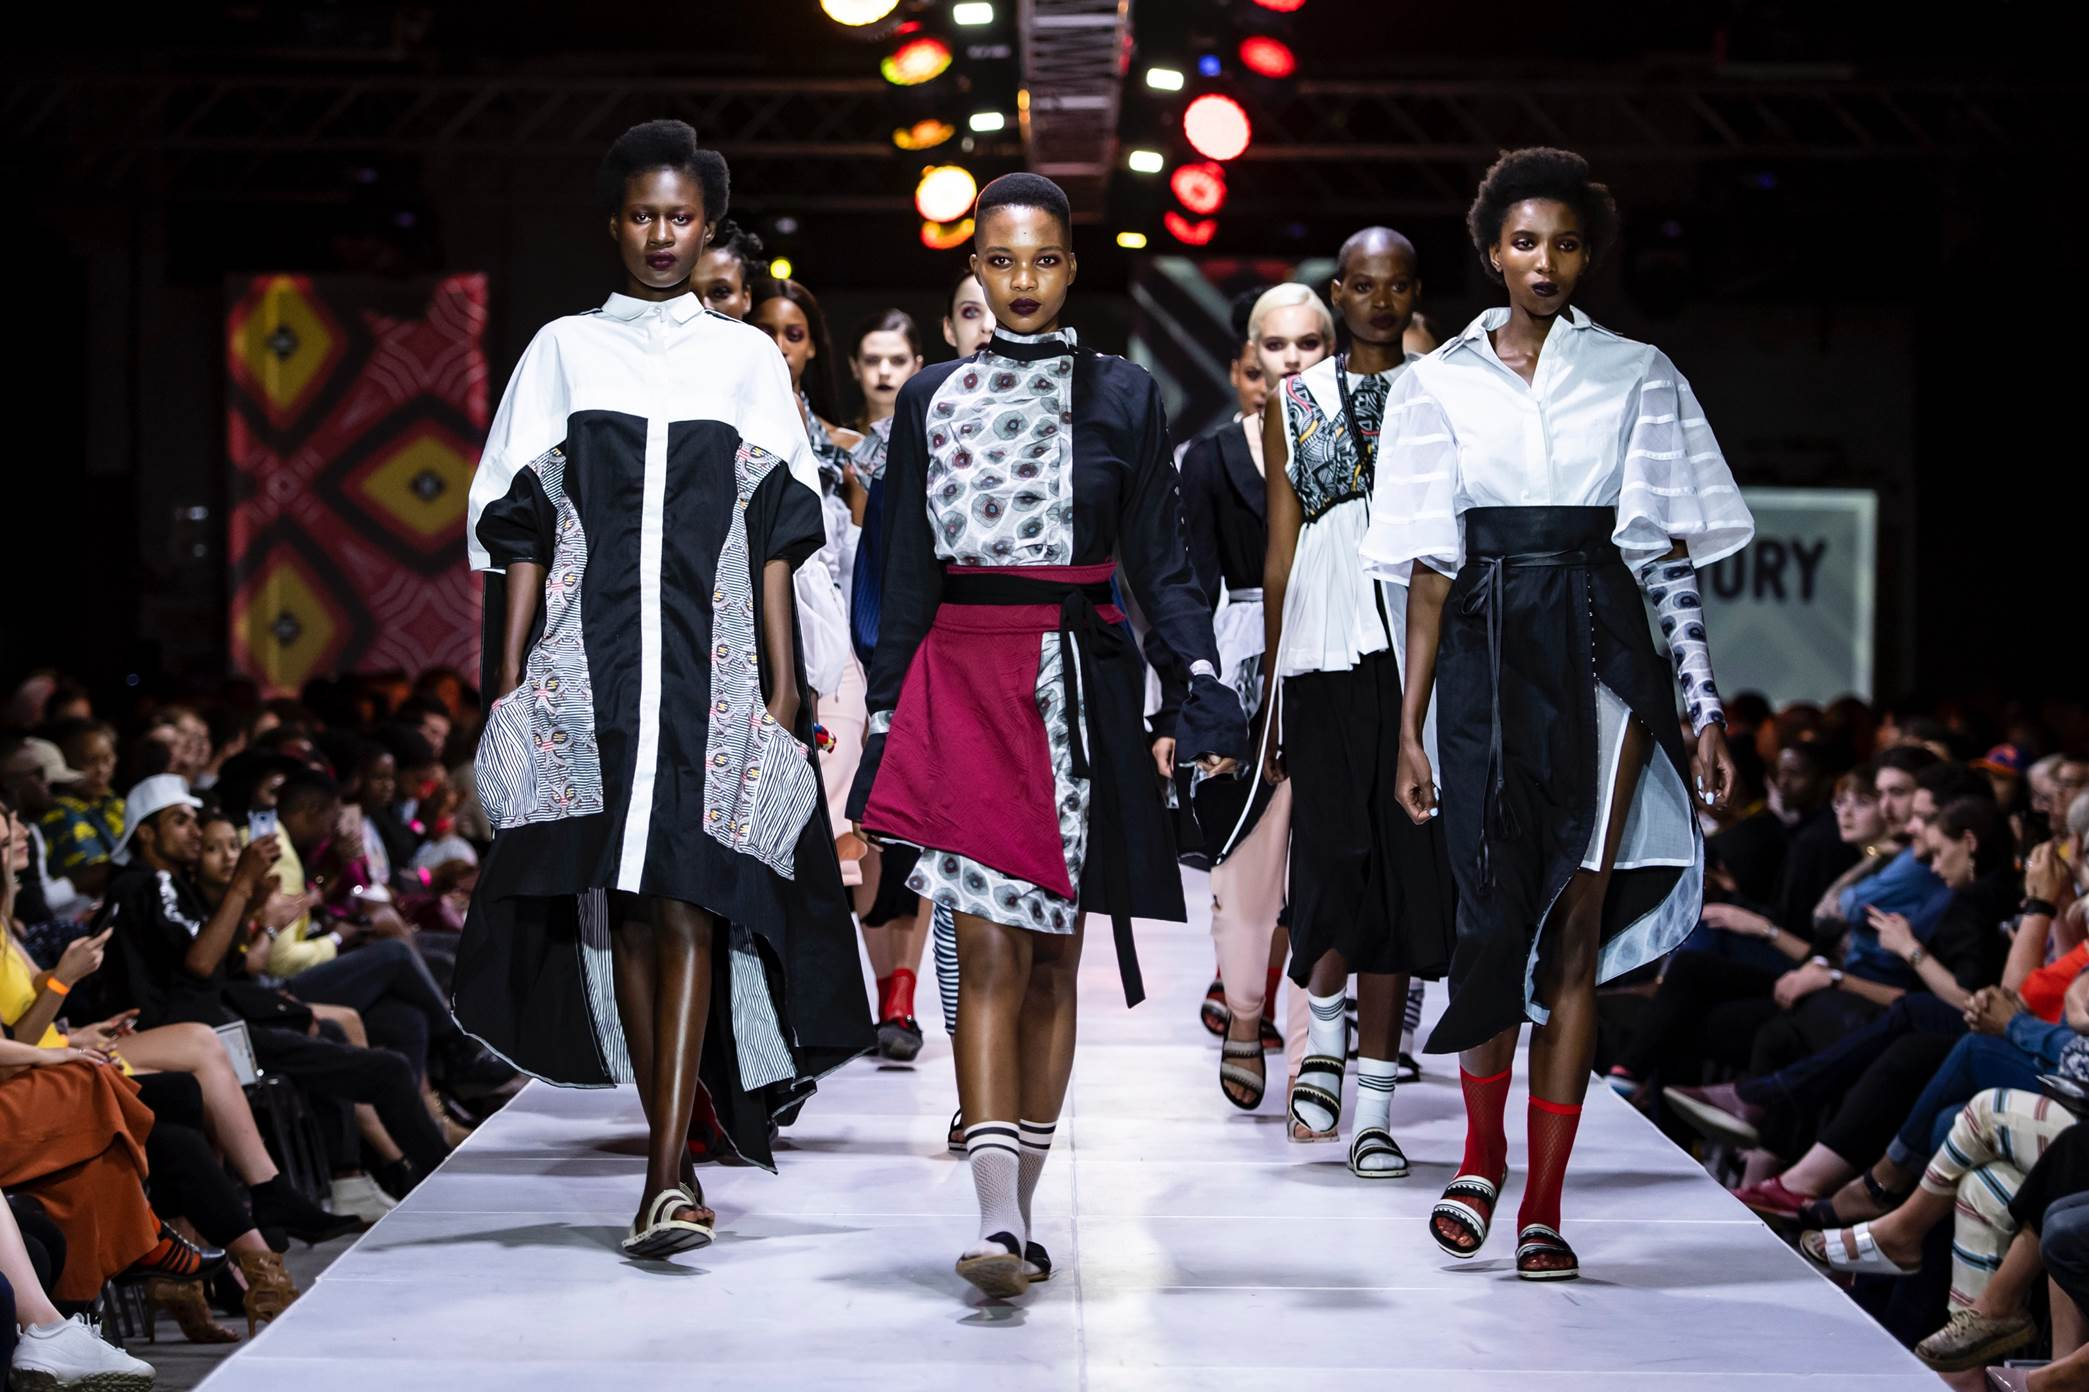 Nando S Spices Up Lisof Fashion Showcase With Unique South African Patterns Between 10 And 5